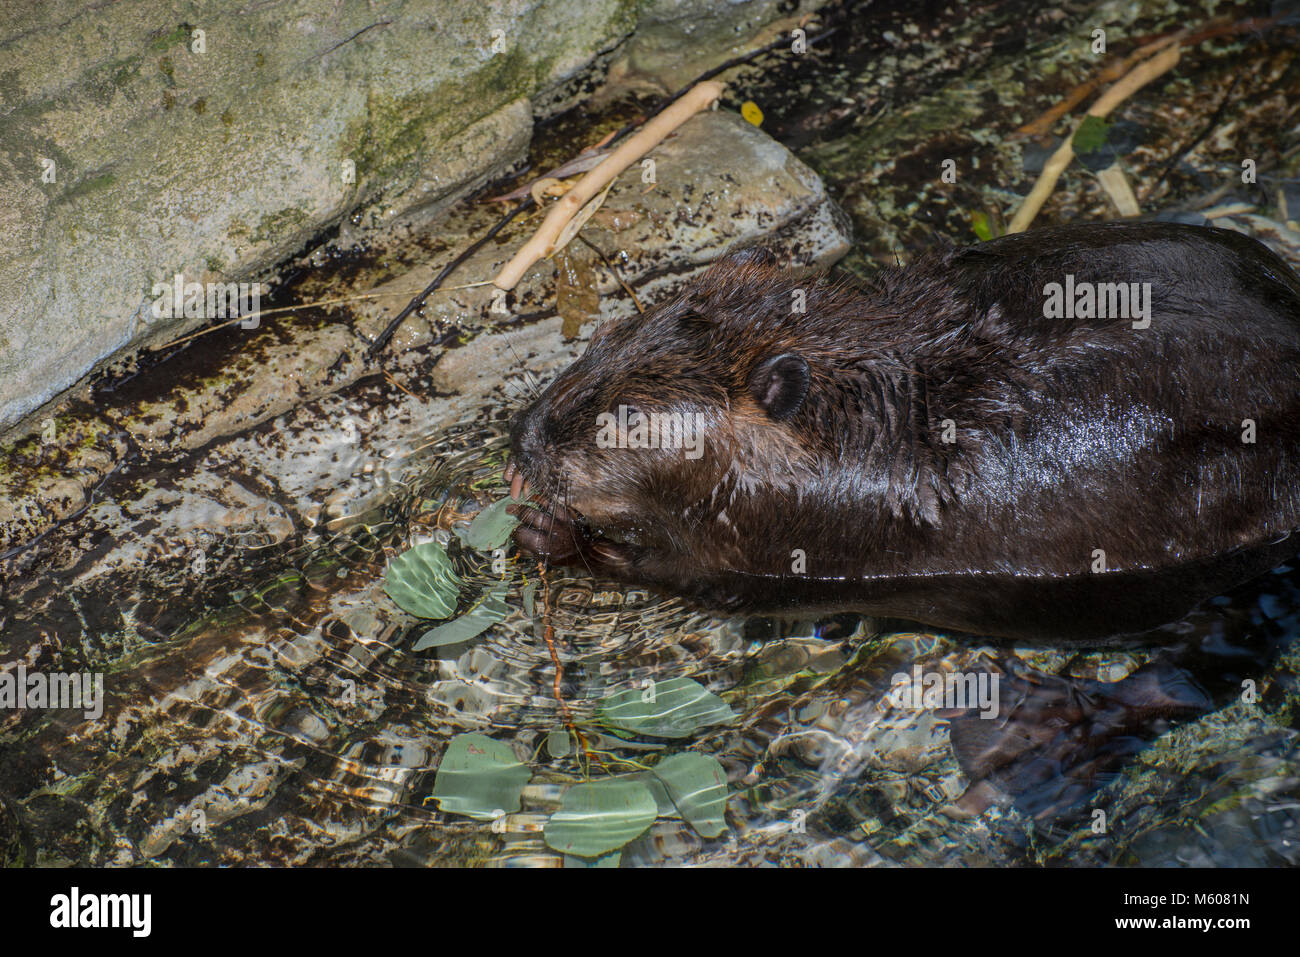 Apple Valley, Minnesota. Minnesota Zoo.  American Beaver, Castor canadensis. Beaver feeding on an aquatic plant. Stock Photo